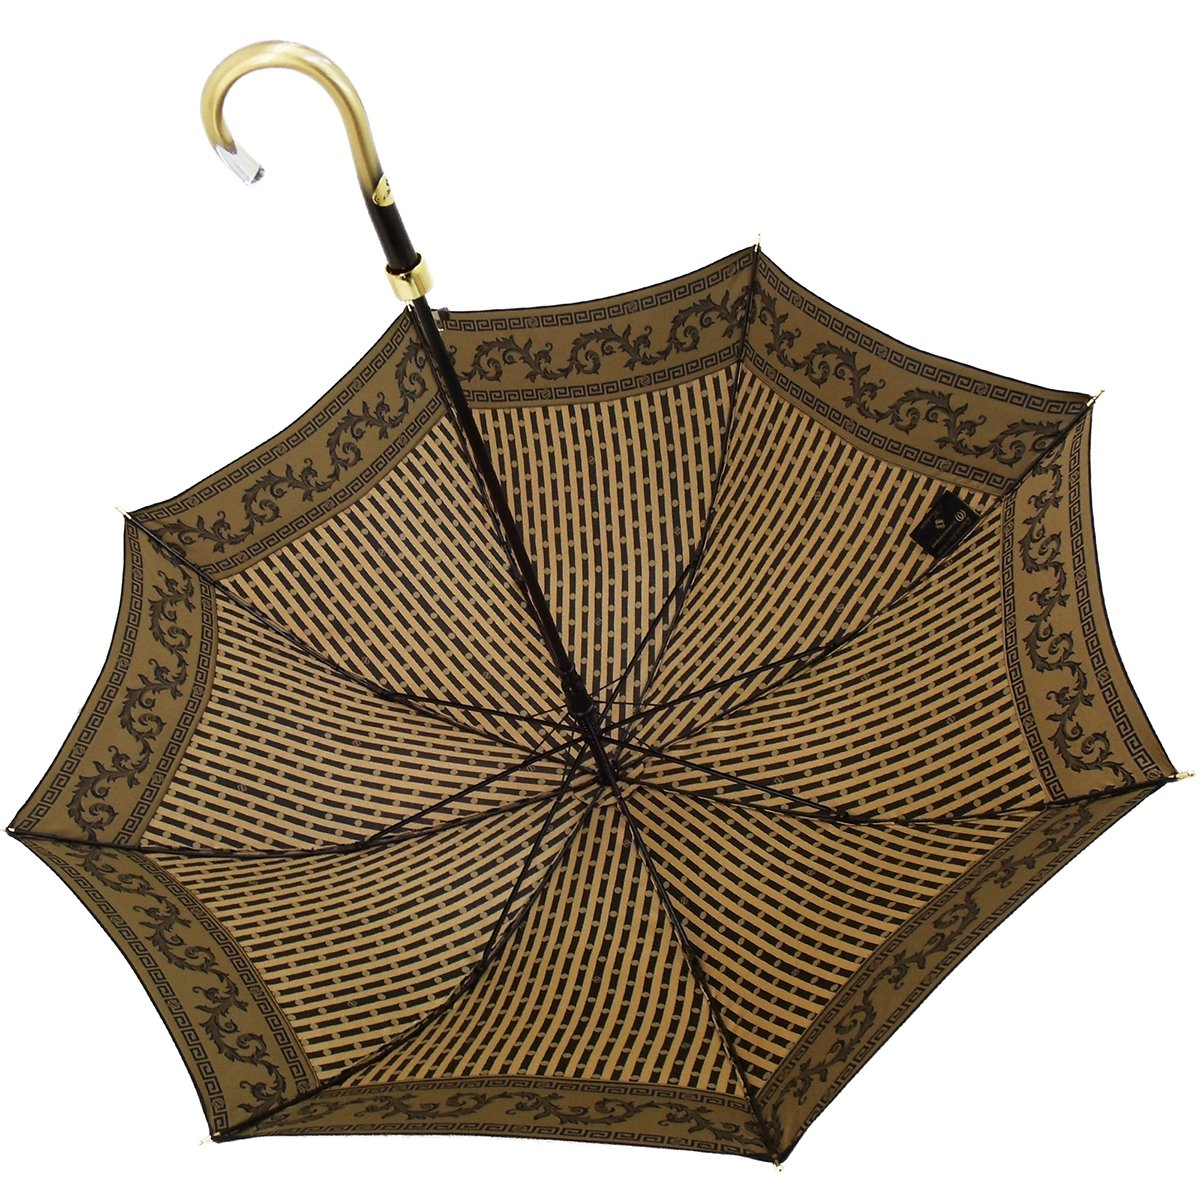 Wonderful Polka Dot Umbrella